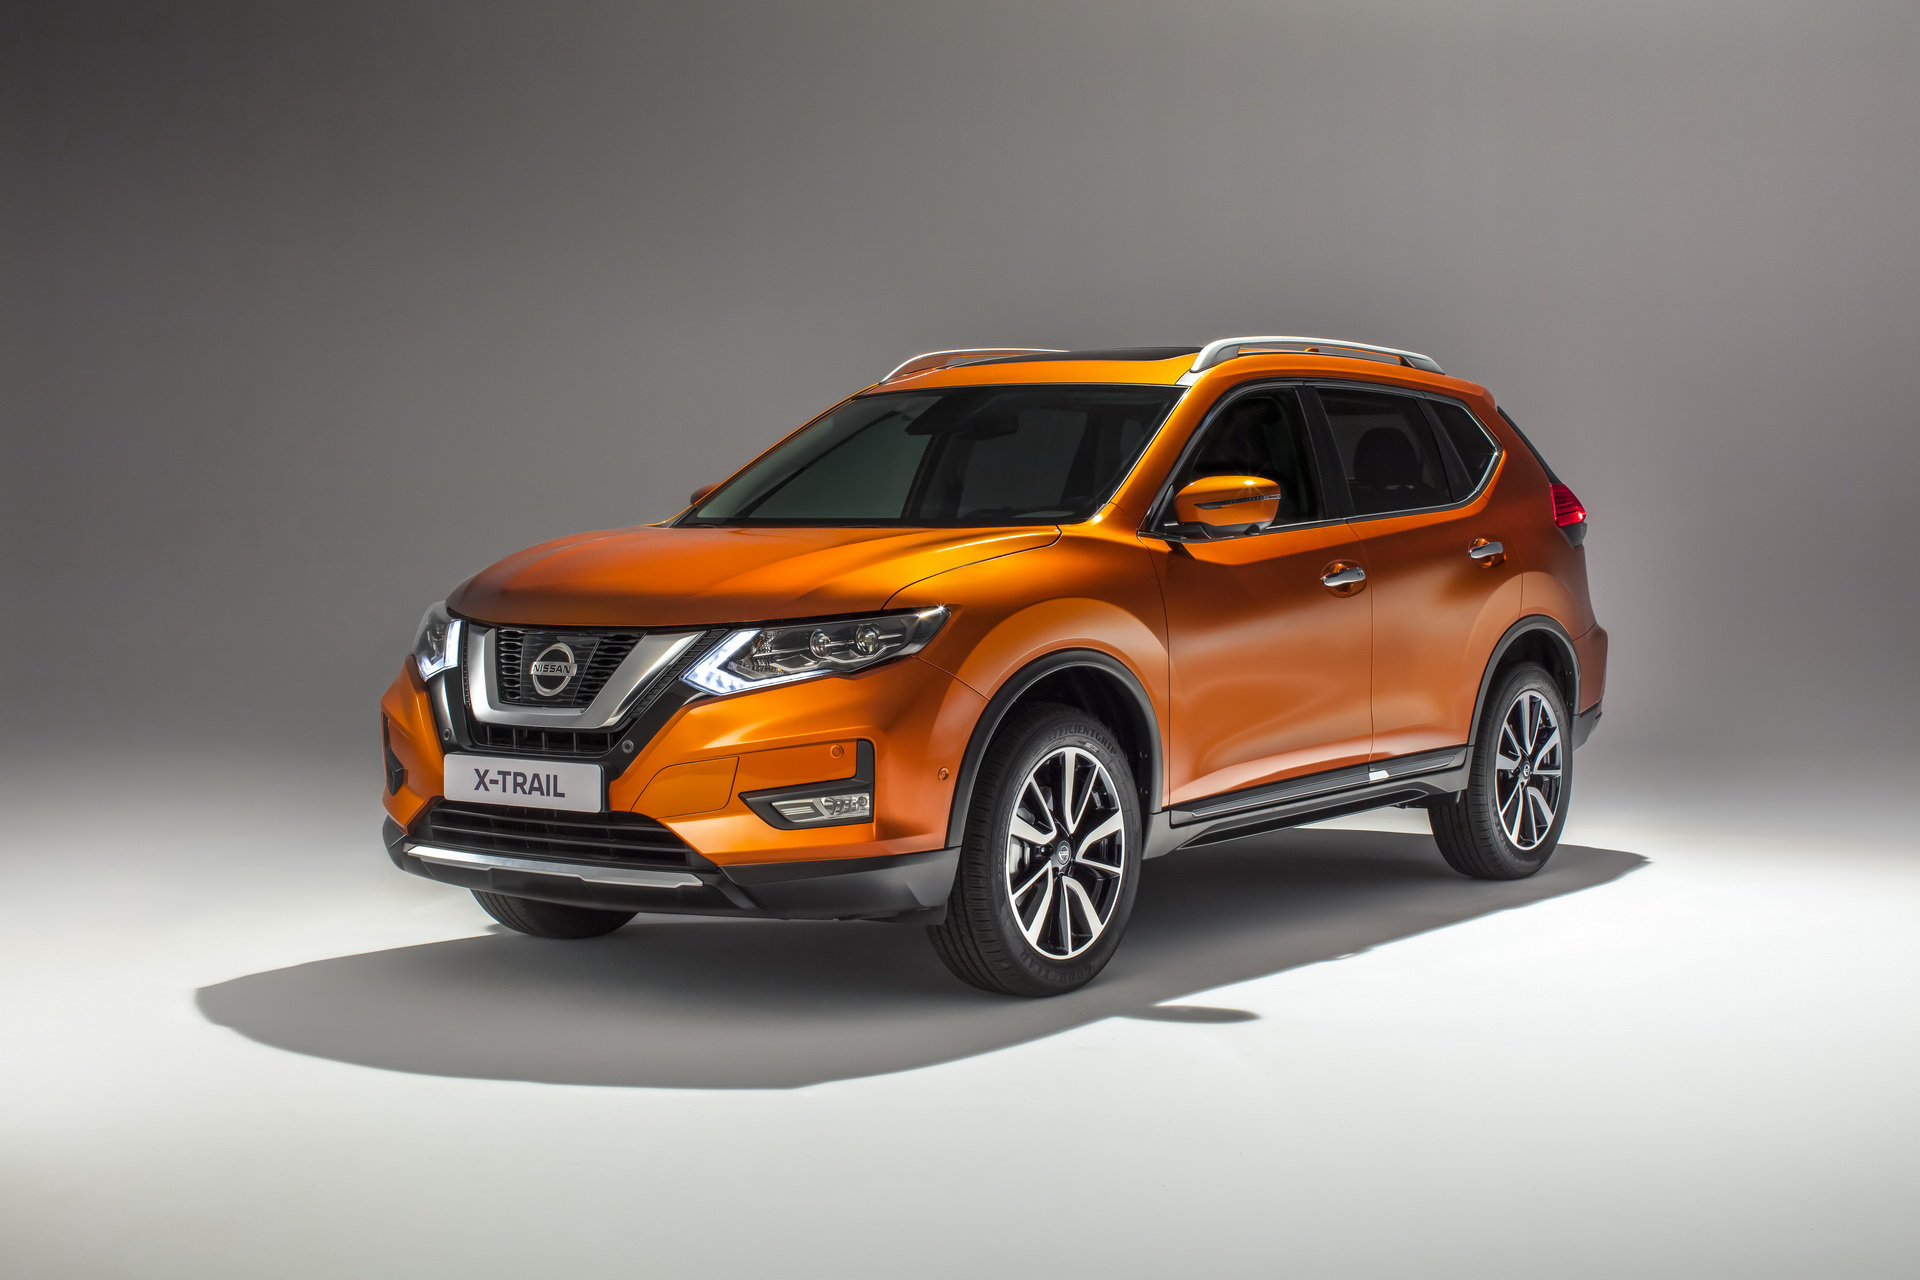 Nissan X Trail New 1 7 Liter Diesel And 1 3 Liter Petrol Units Join Uk Range Carmojo The Nissan X Trail S 1 7 Liter Diesel Engi Nissan Nissan Xtrail Suv